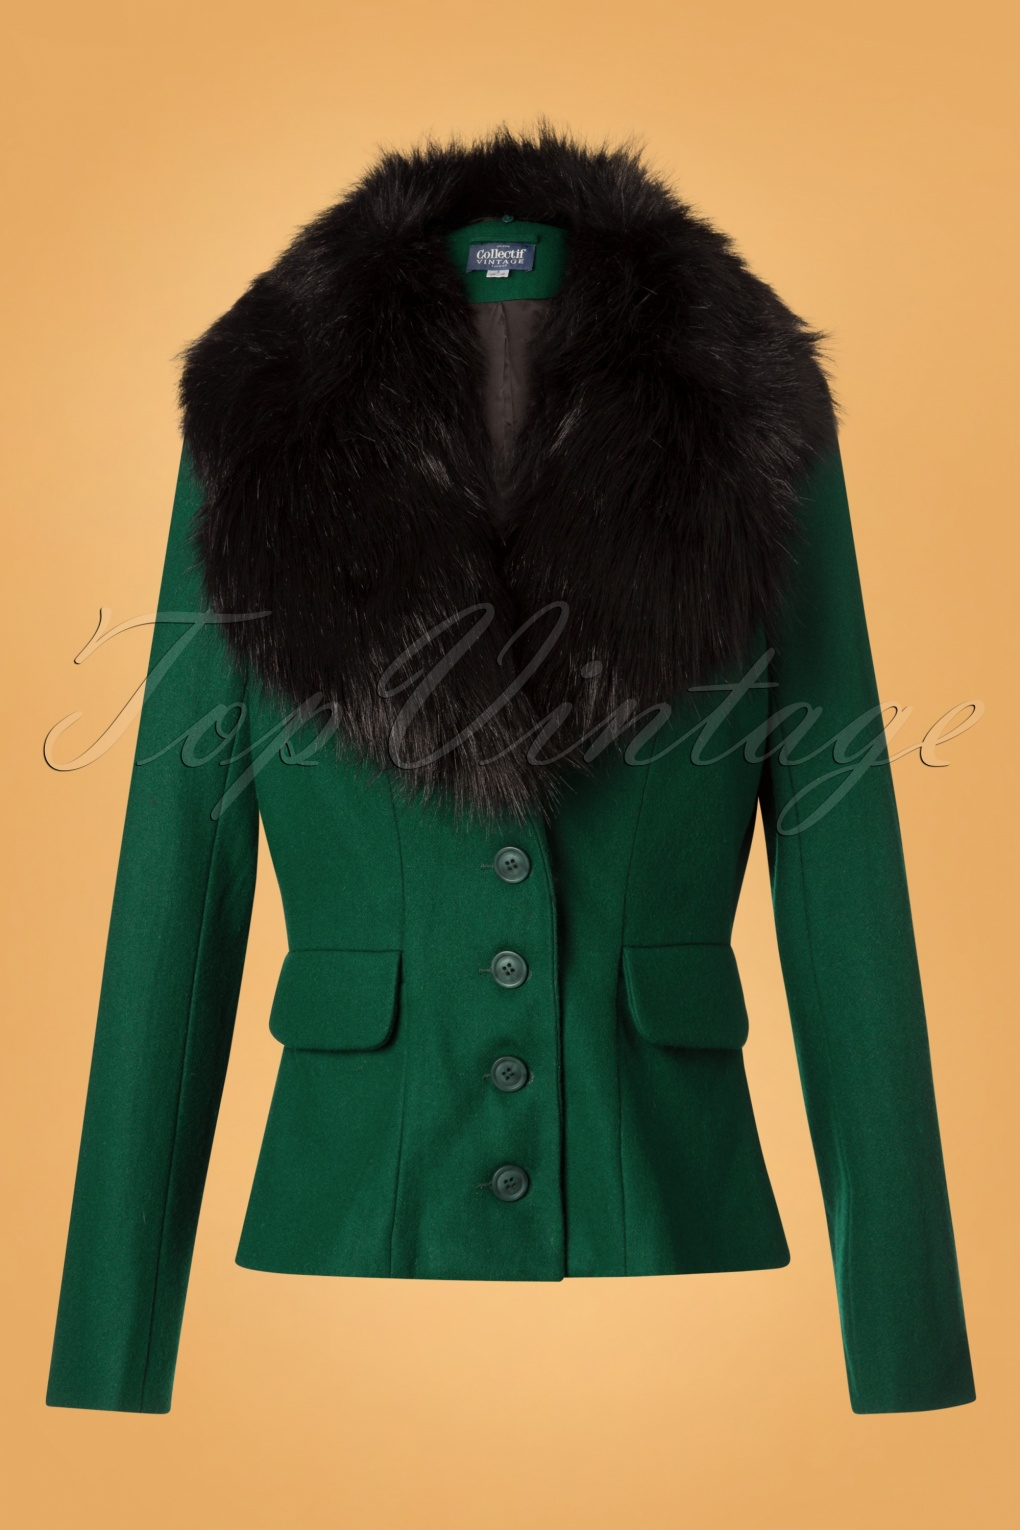 ae106d563de 1940s Coats   Jackets Fashion History 40s Cora Jacket in Green £72.76 AT  vintagedancer.